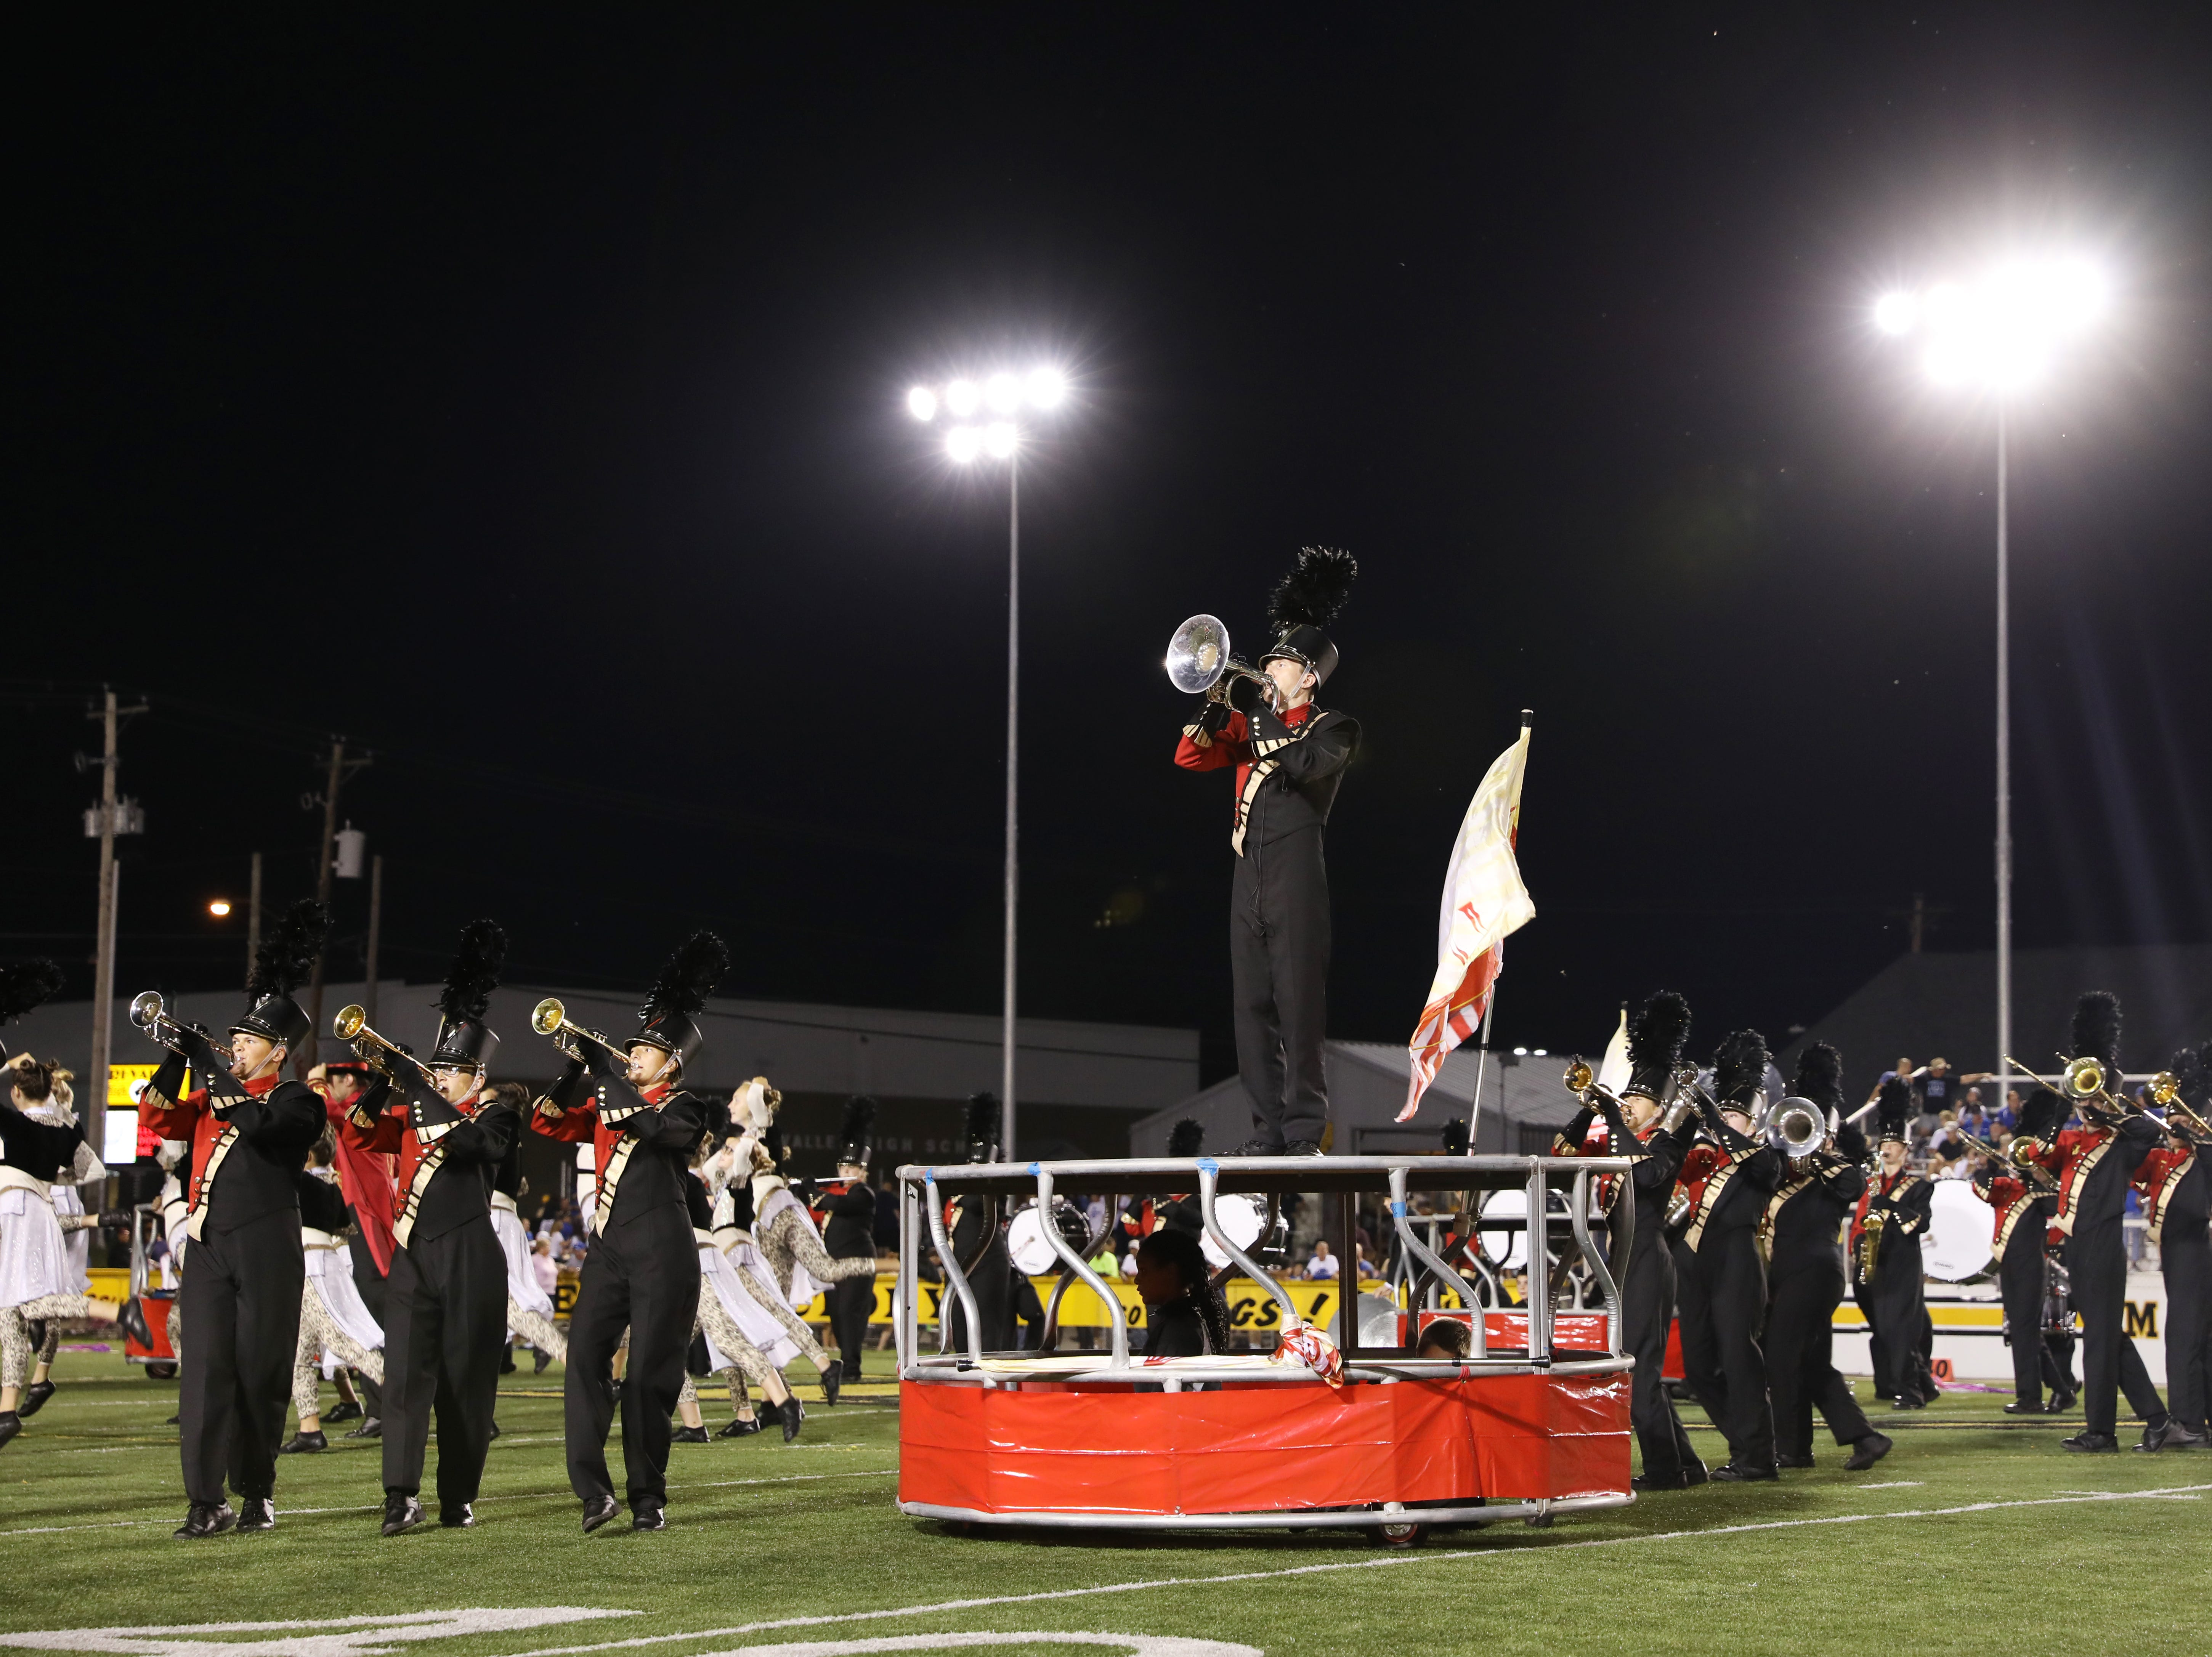 The Tri-Valley High School marching band performs during Friday's game.